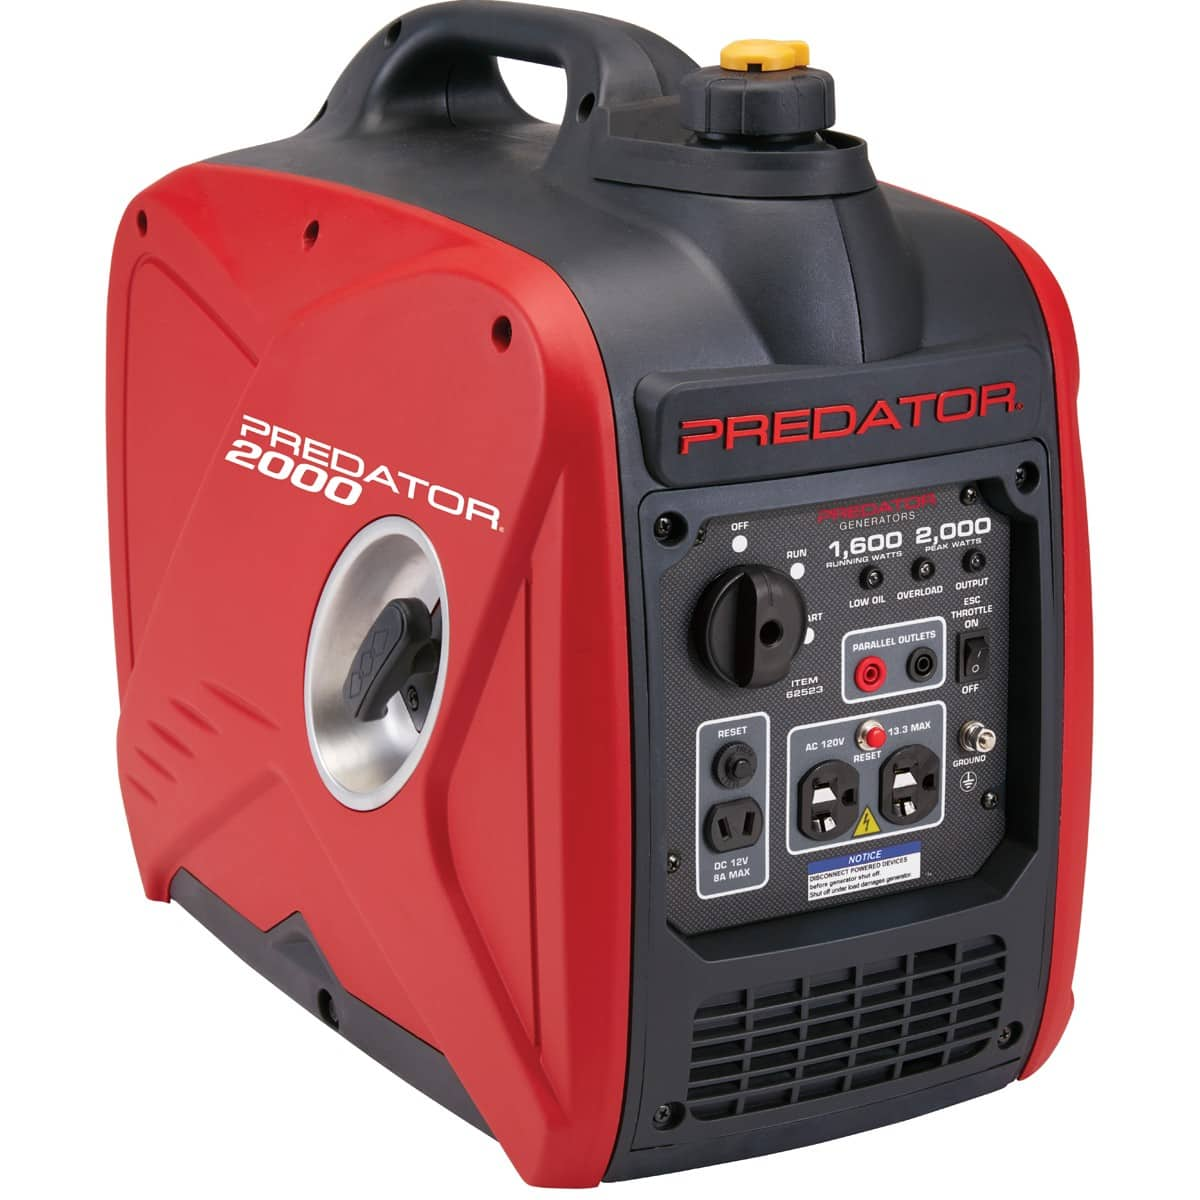 Harbor Freight - Predator 2000 Peak/1600 Running Watts, 2.8 HP (79.7cc) Portable Gas Inverter Generator CARB - $399 after coupon. $6.99 shipping or store pickup